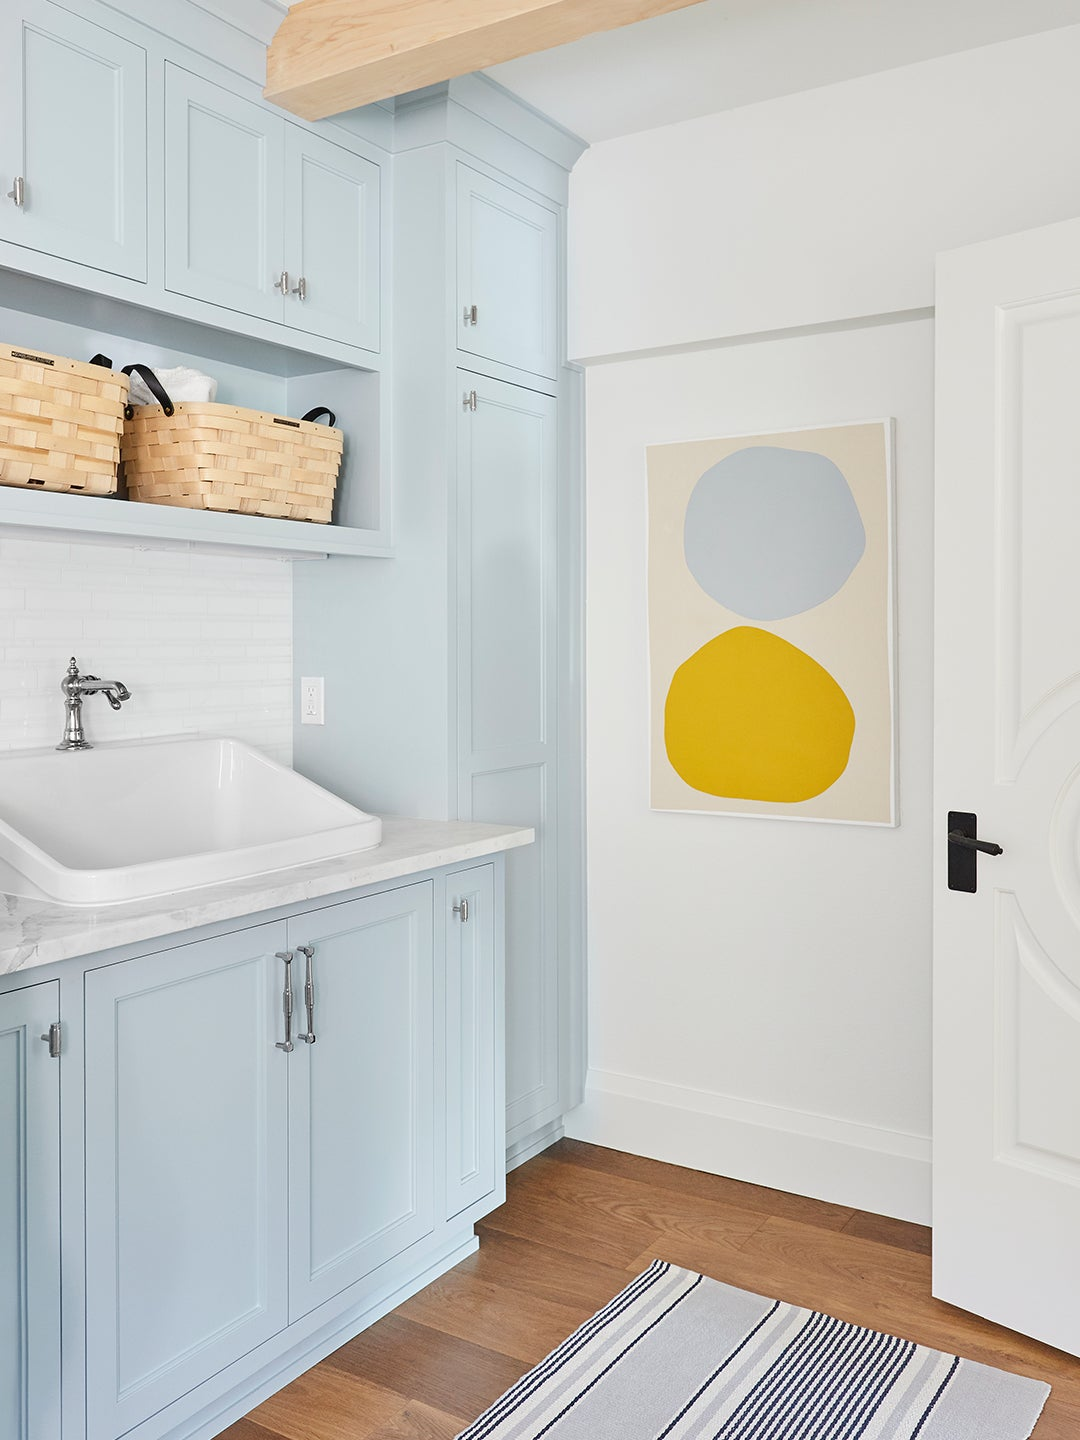 Behr's New Paint Palette Was Created Specifically to Increase Your Home's Value